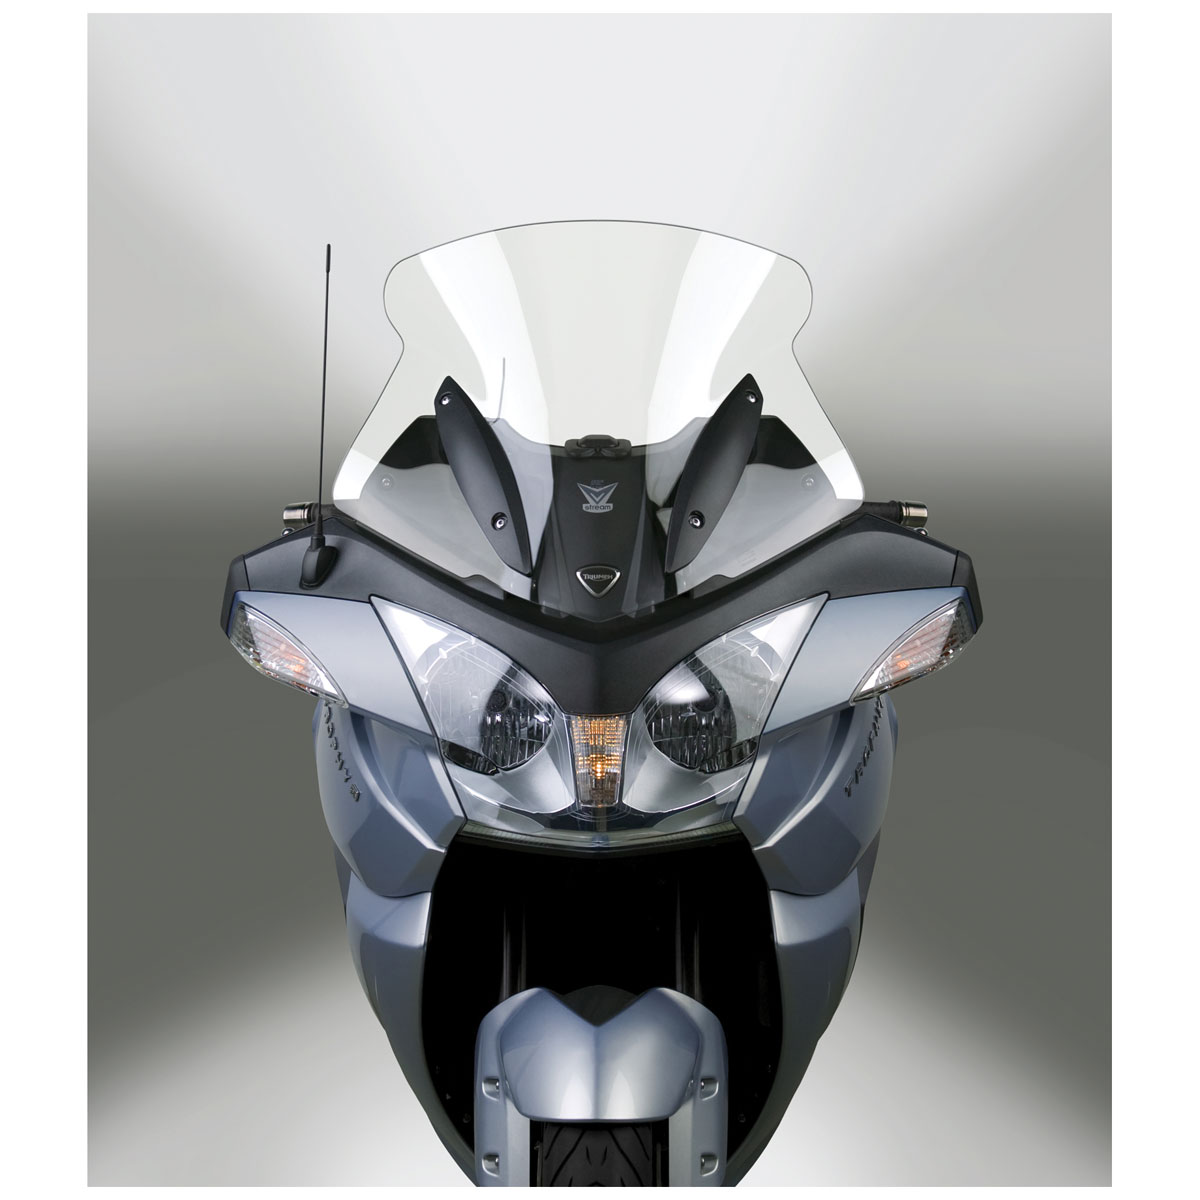 National Cycle VStream Sport Touring Windshield, Clear - N20607